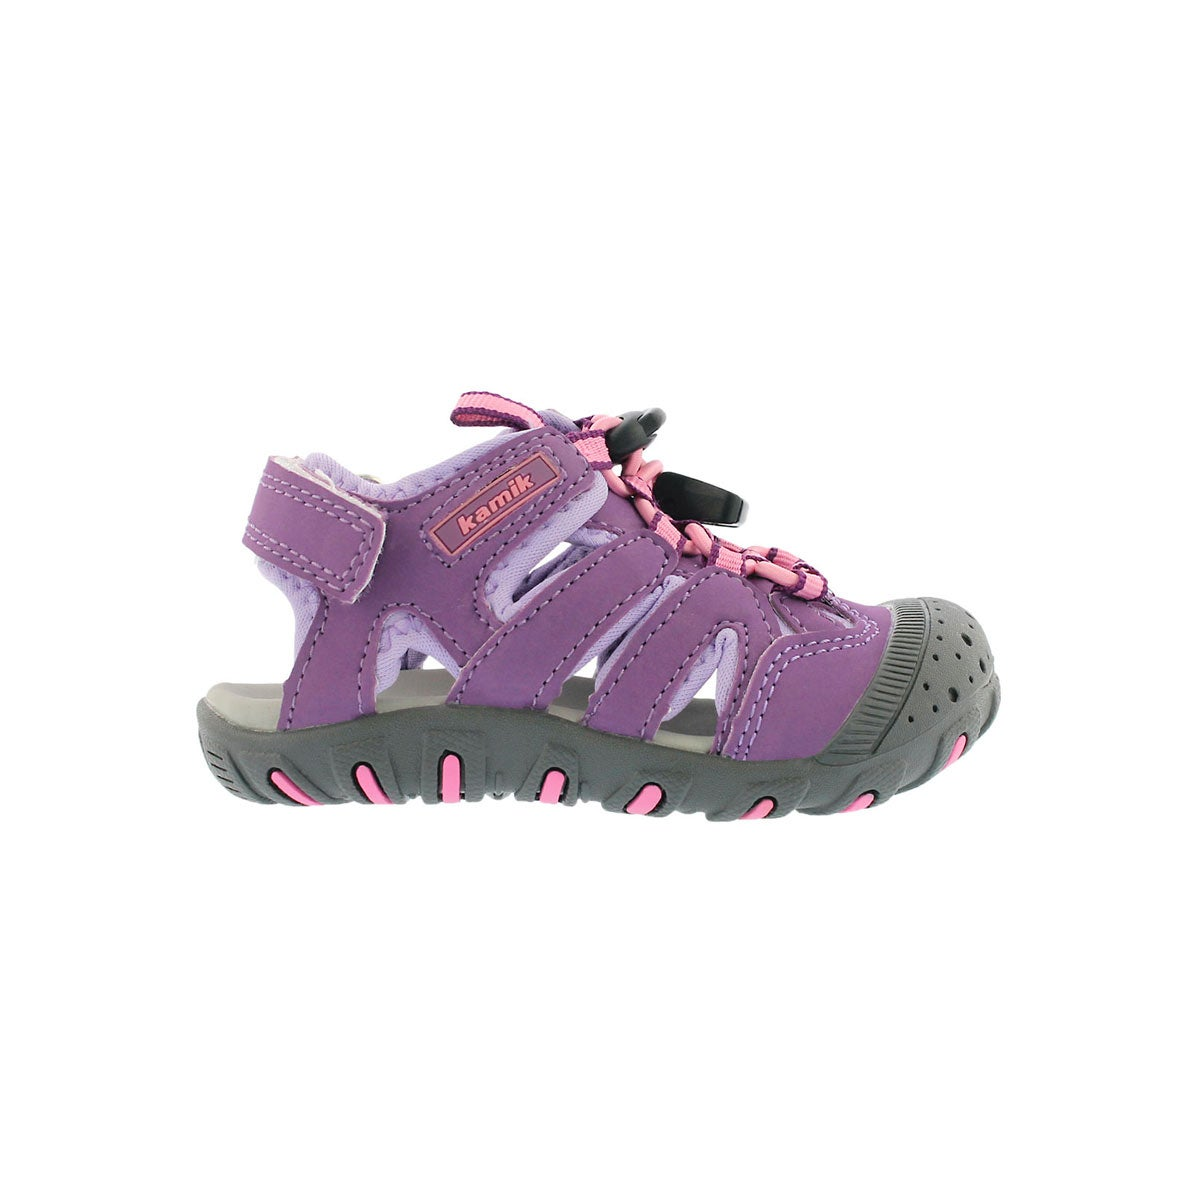 Infs-g Oyster purple fisherman sandal